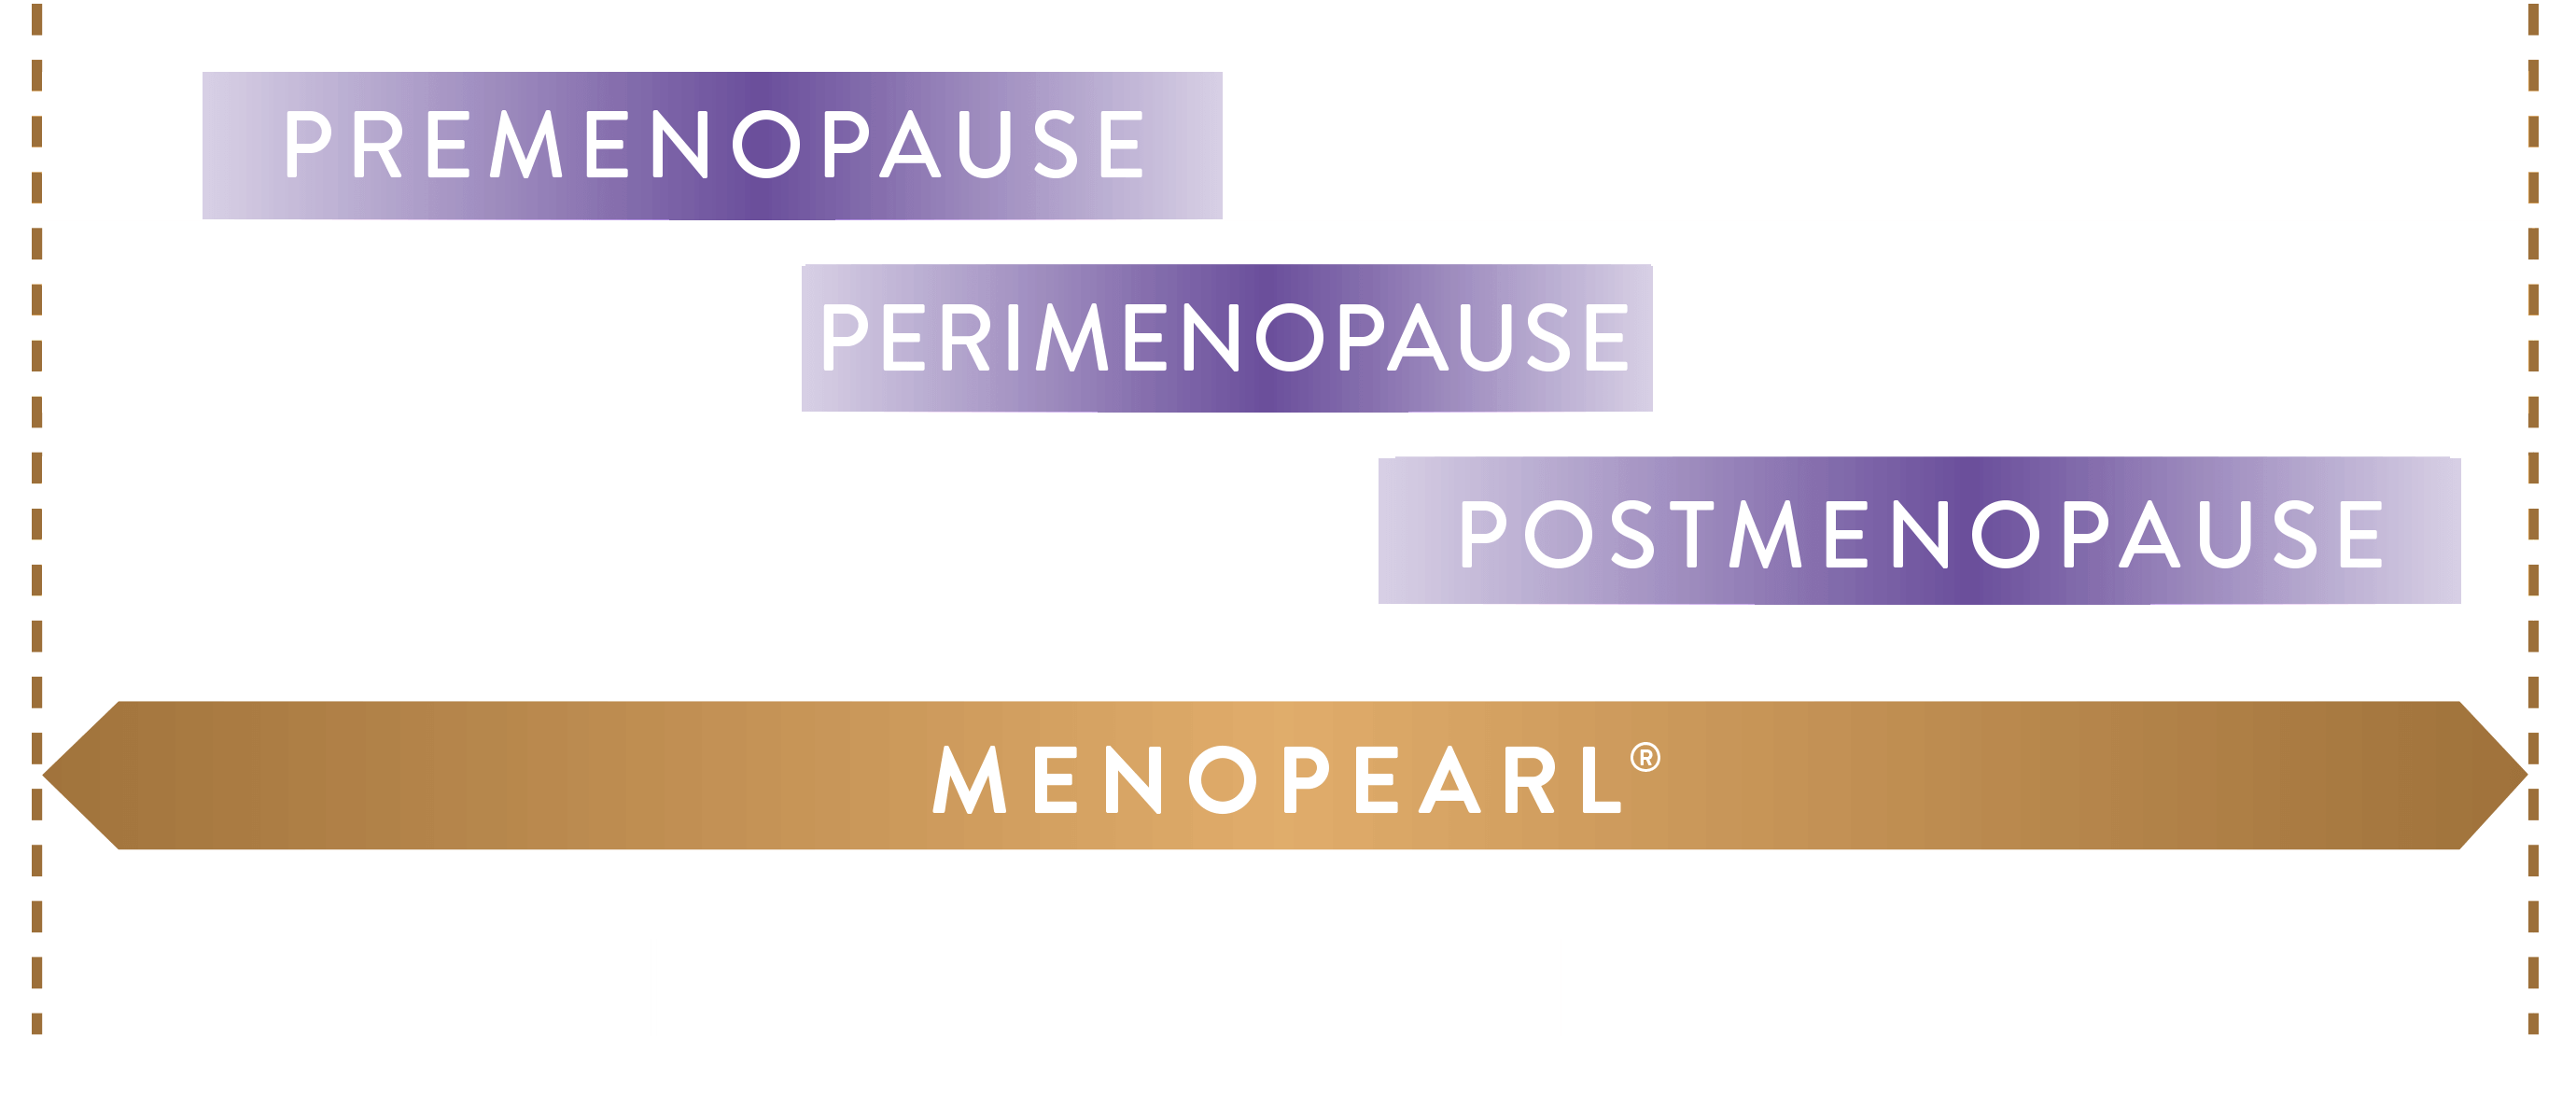 3 Phases of Menopause